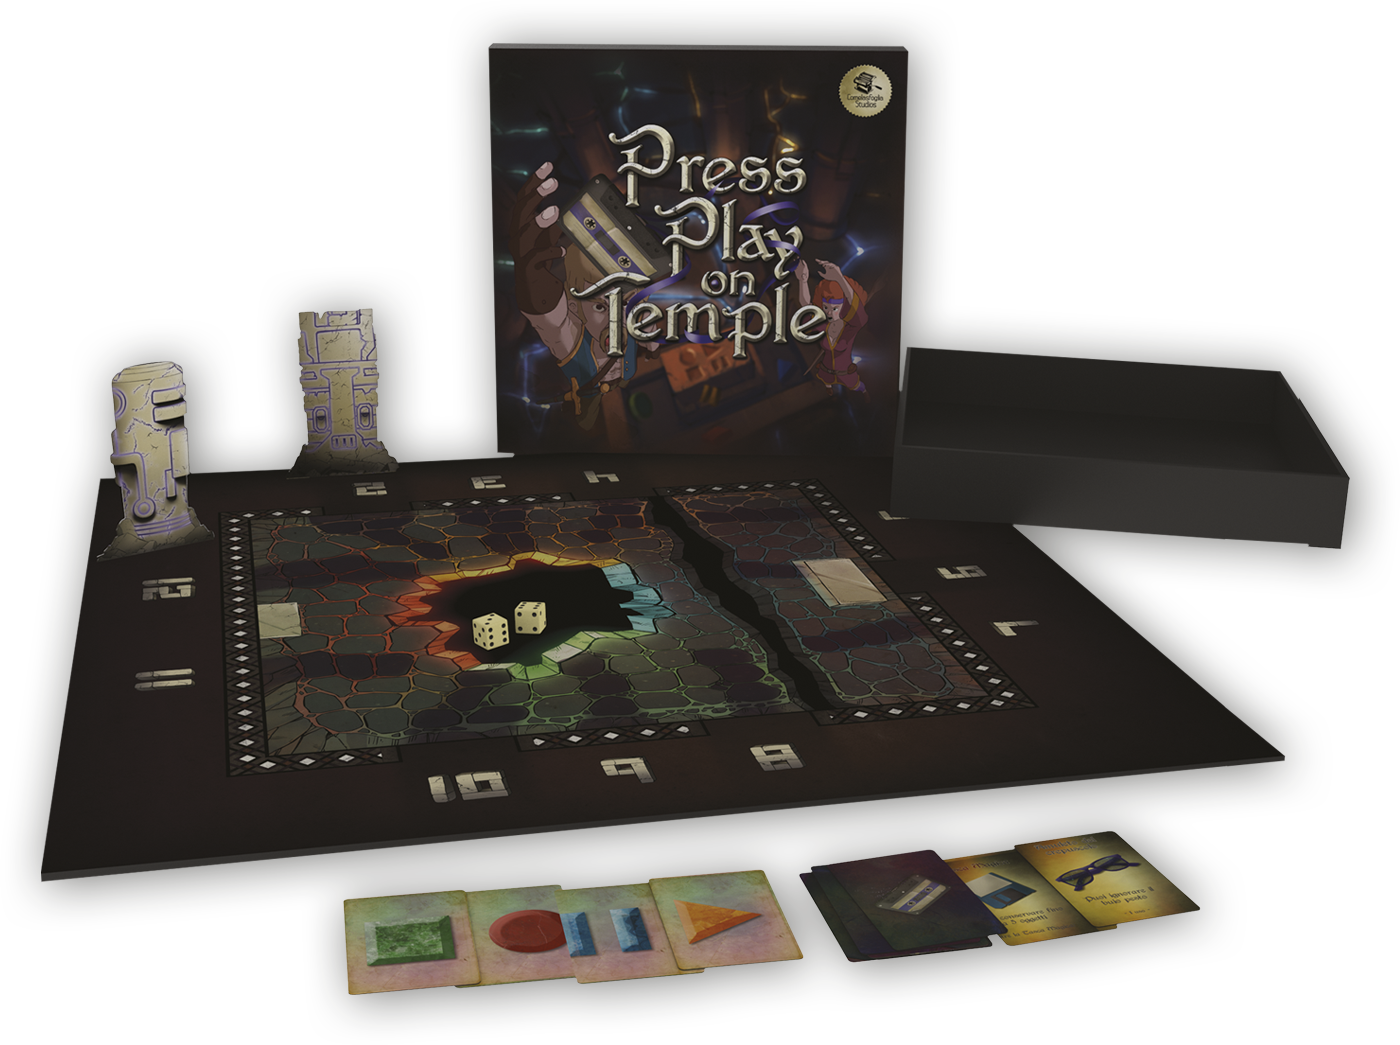 Press Play on Temple, the game